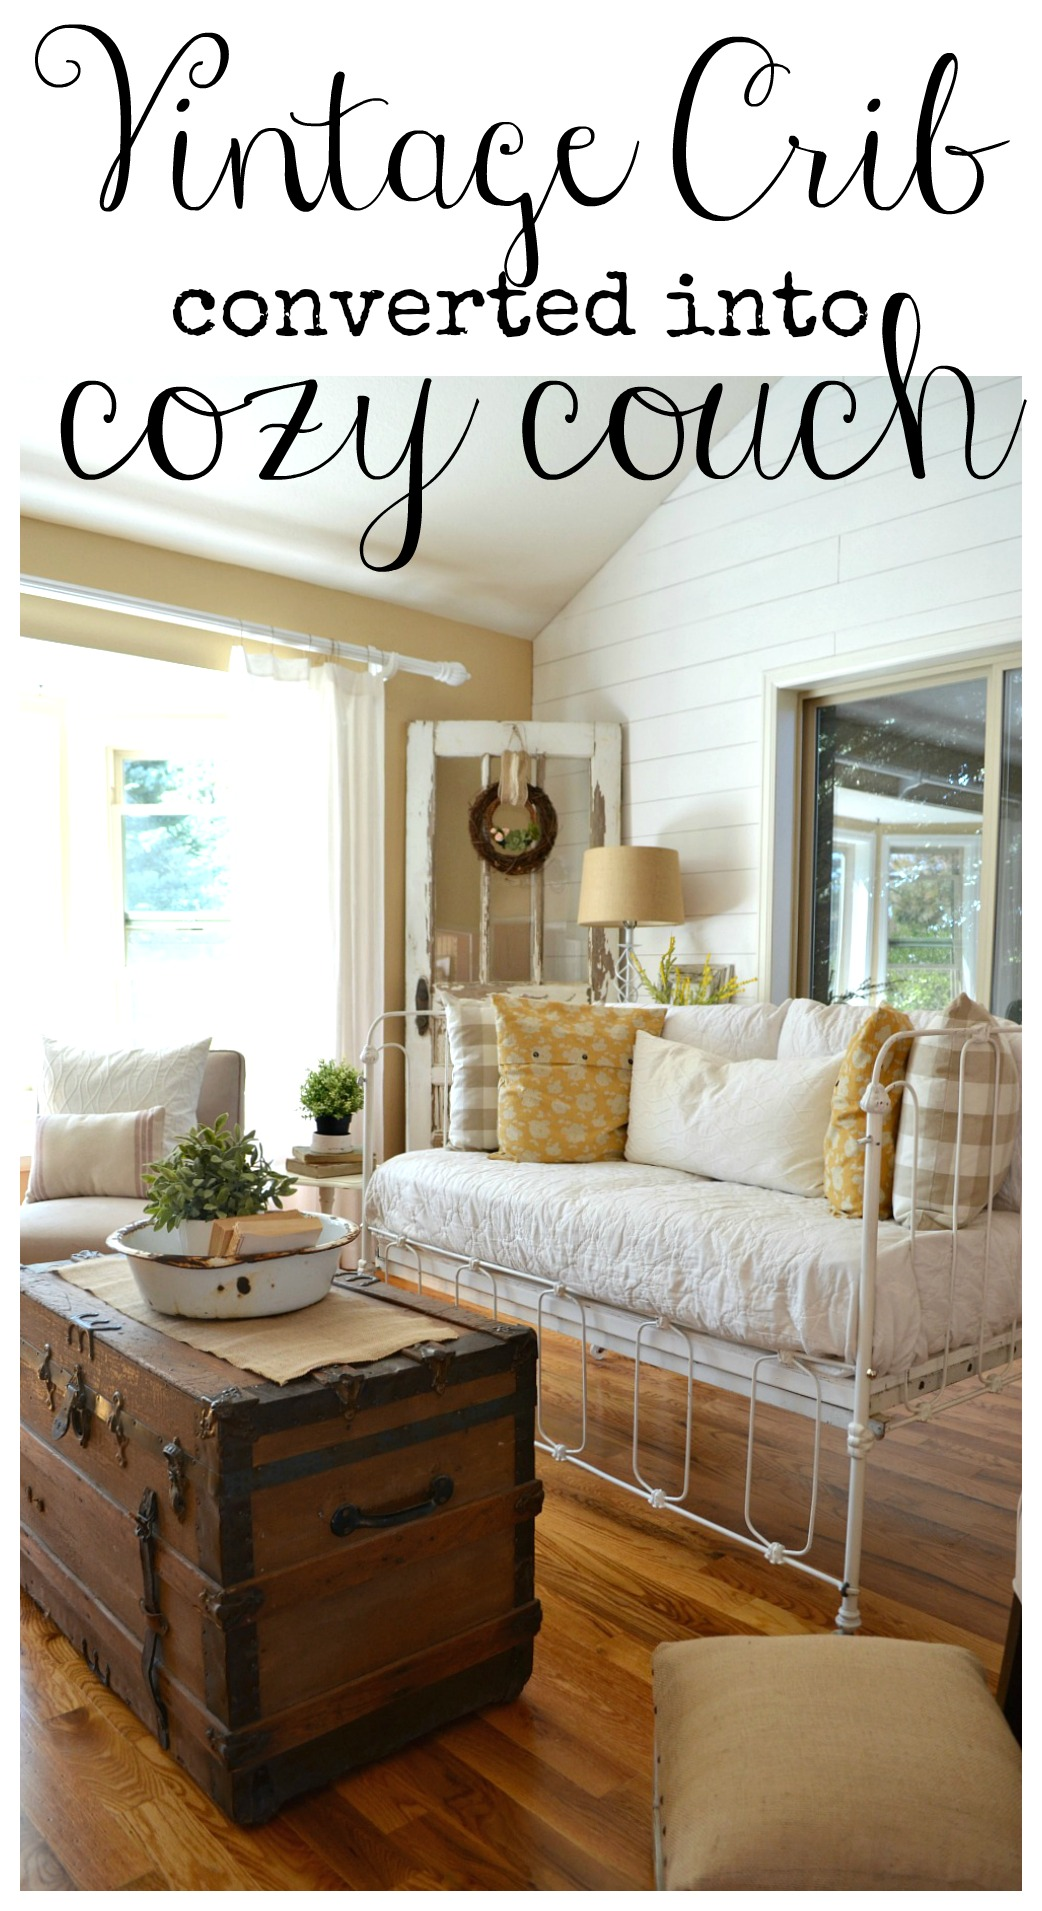 Vintage Crib Converted into Cozy Couch